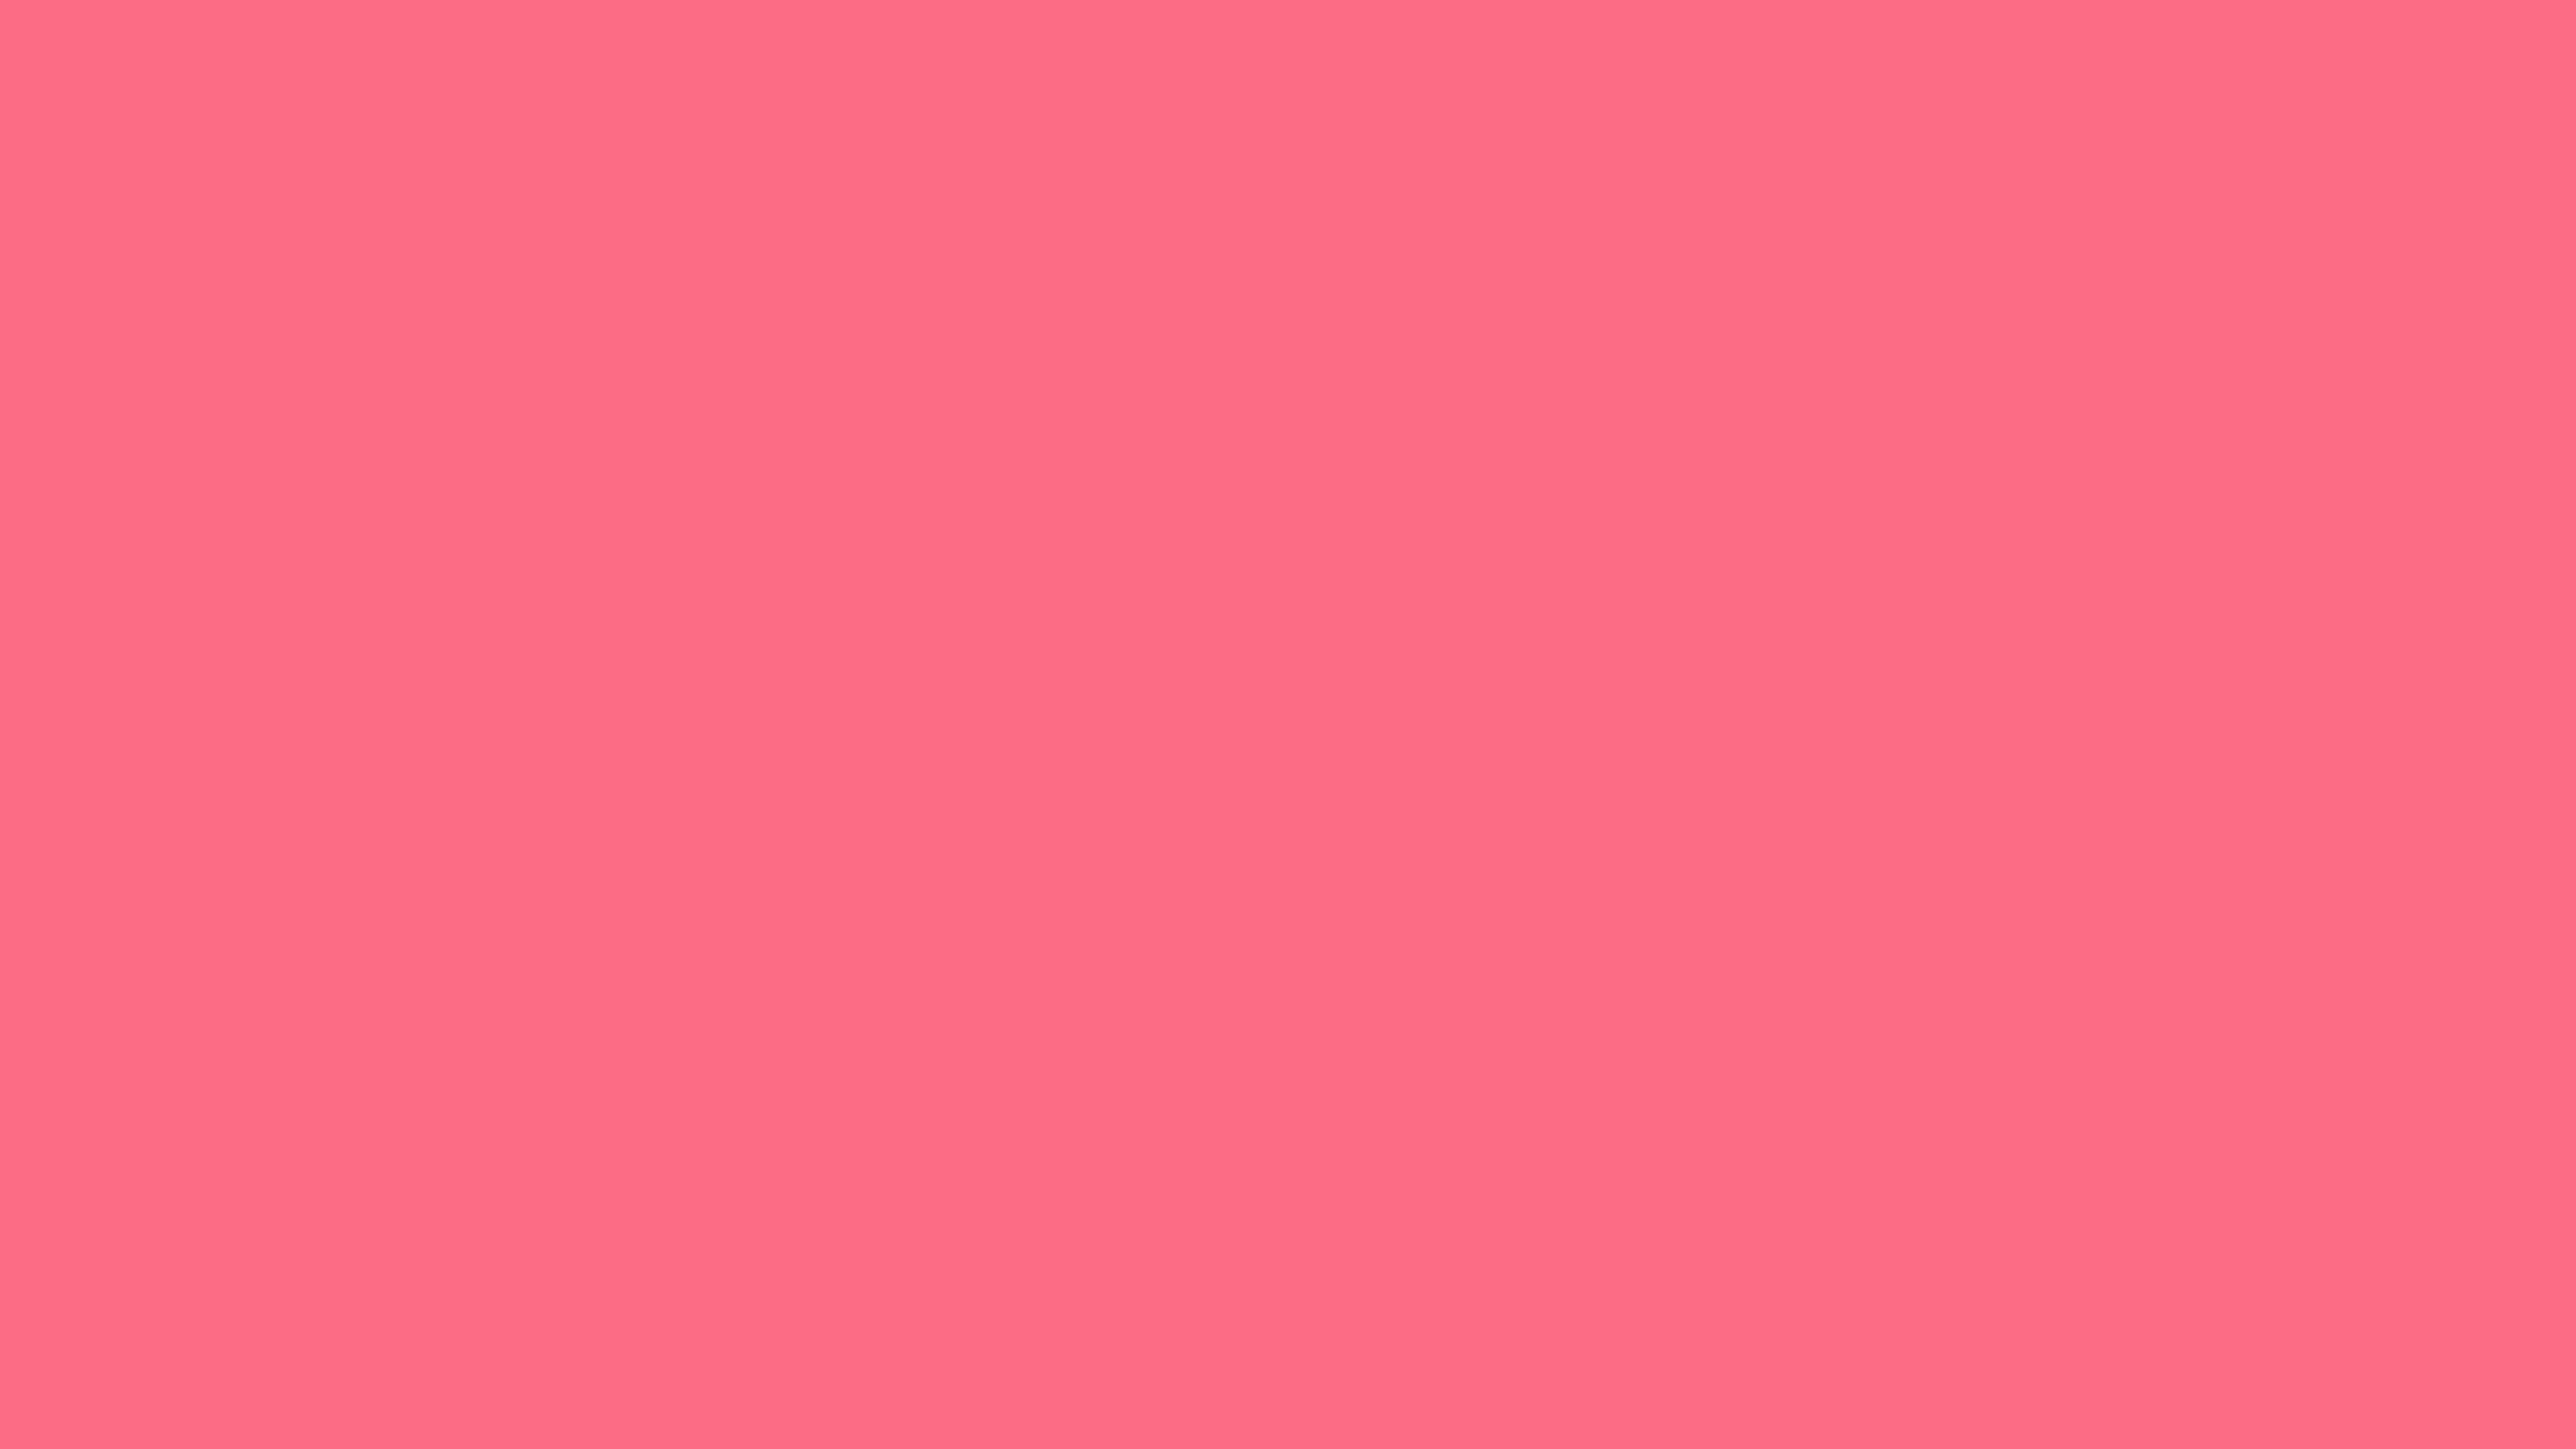 5120x2880 Wild Watermelon Solid Color Background